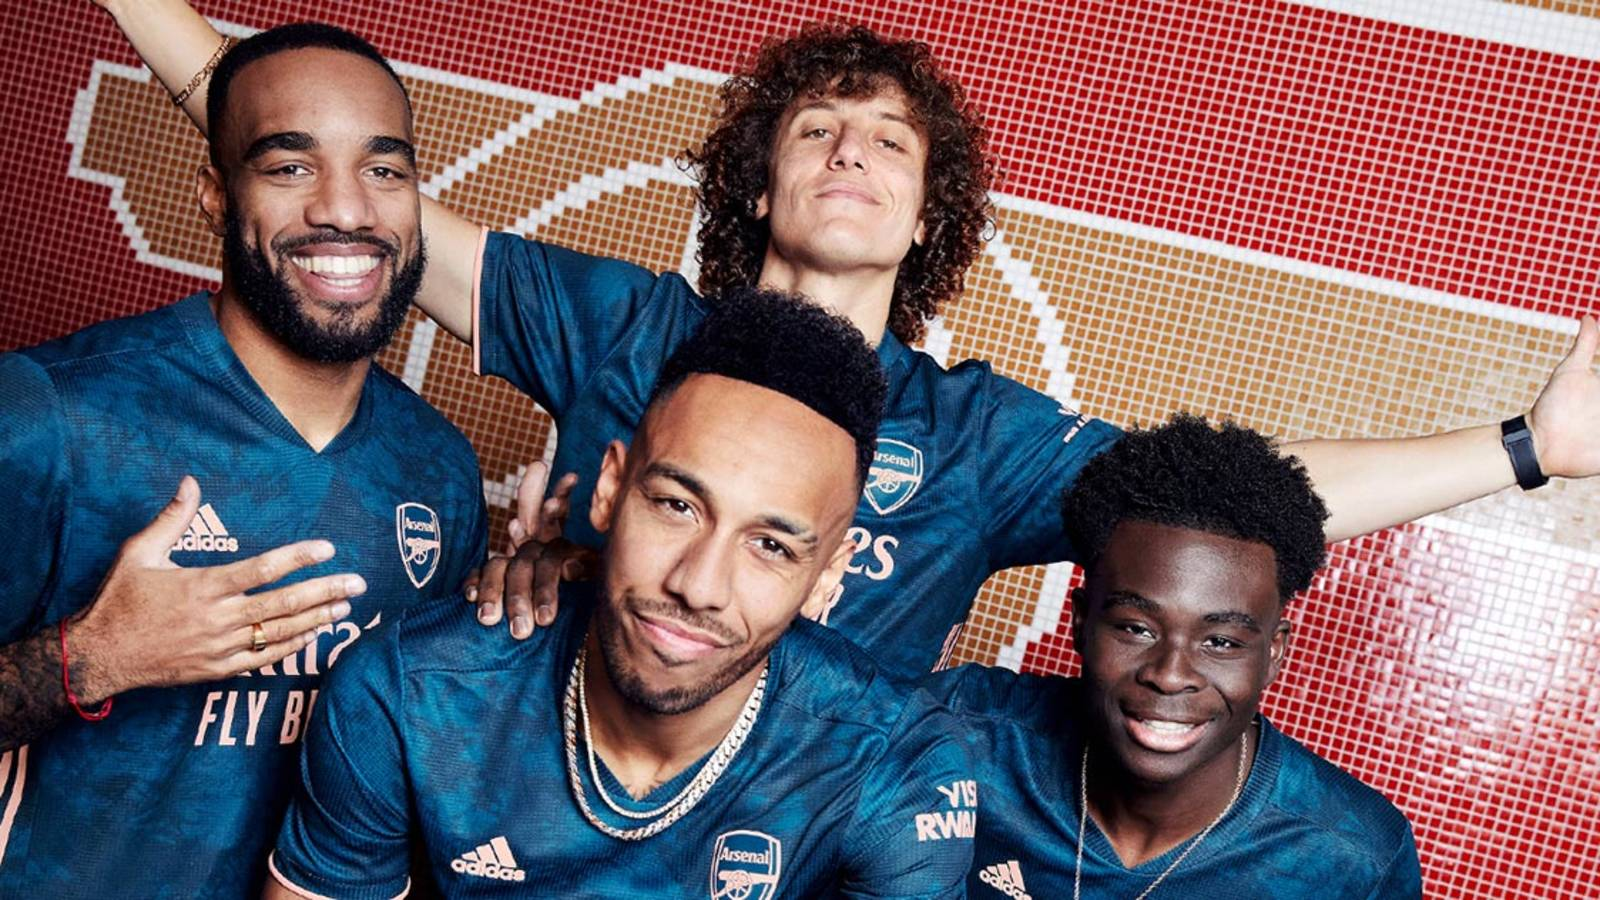 Presenting Our New Adidas X Arsenal Third Kit Adidas X Arsenal News Arsenal Com